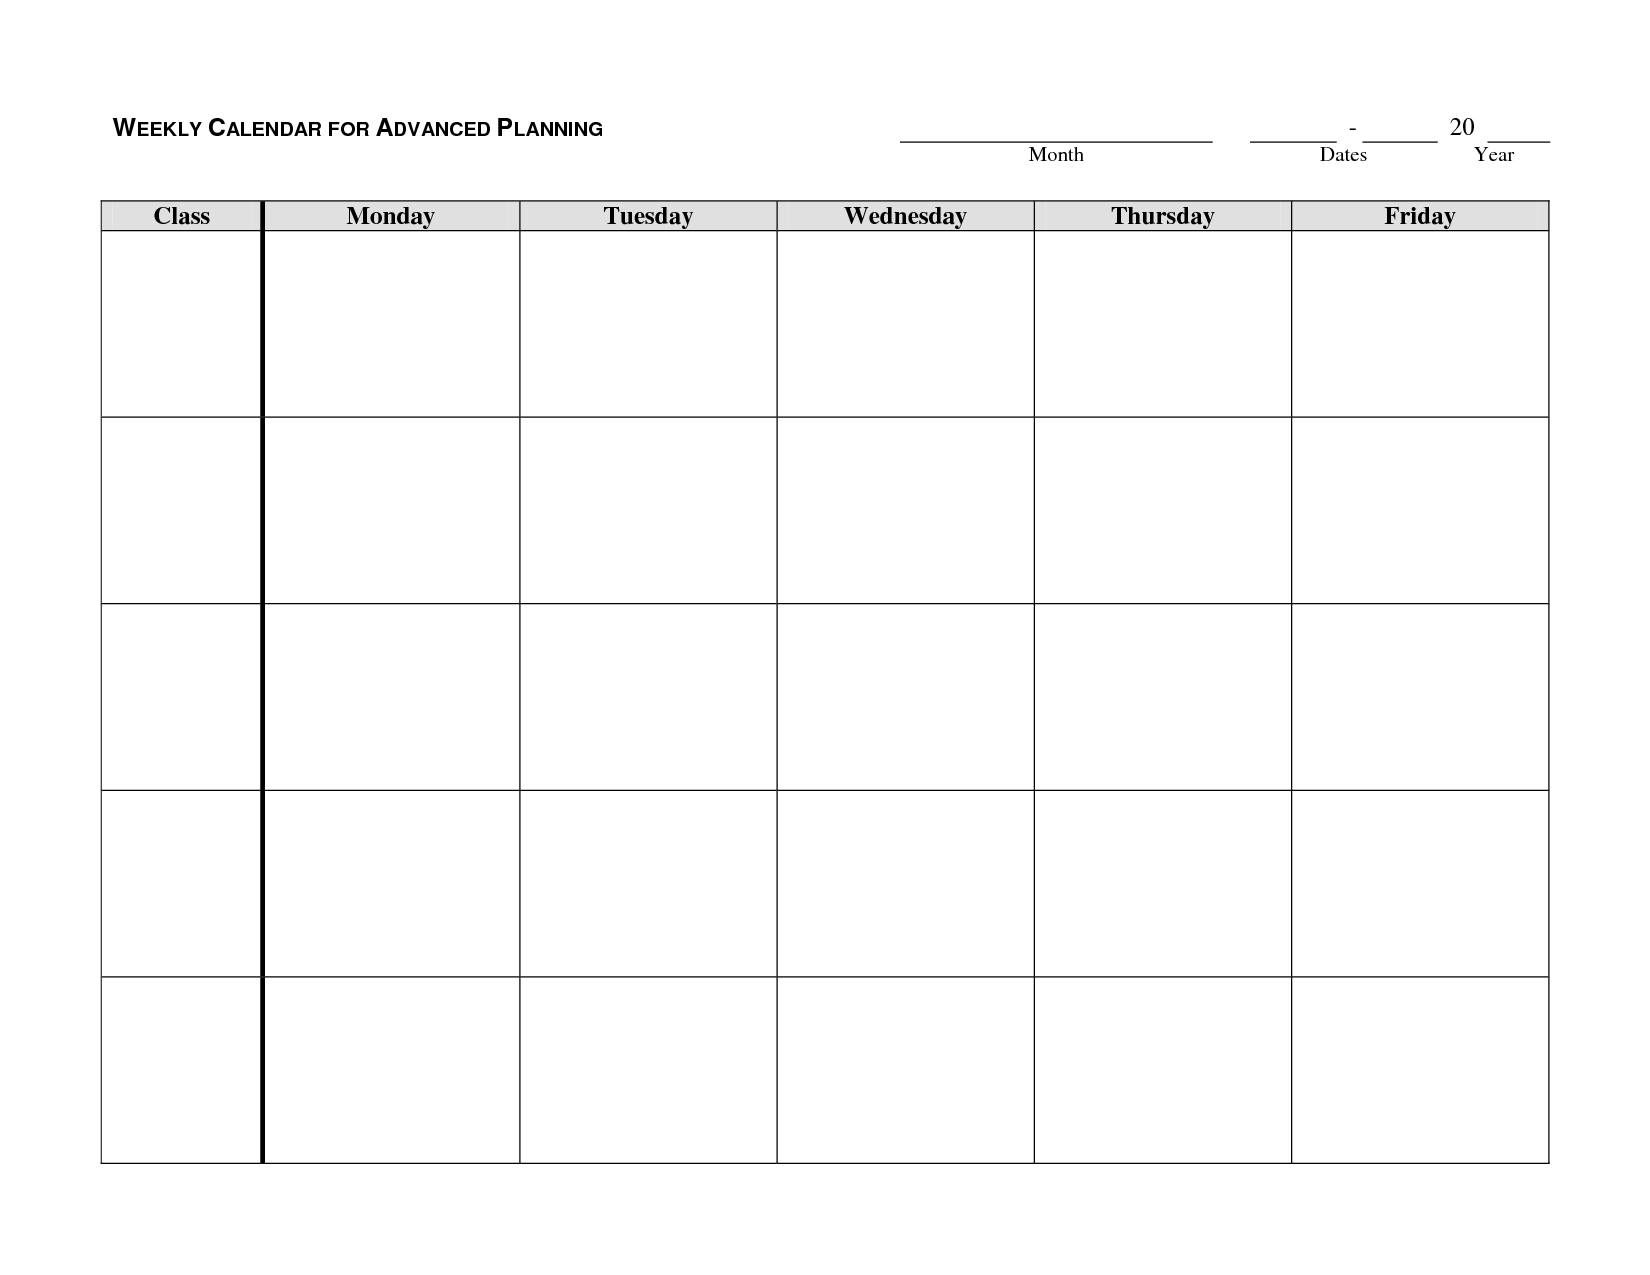 Monday Through Friday Planning Template   Calendar Word Calendar Template Monday Through Friday